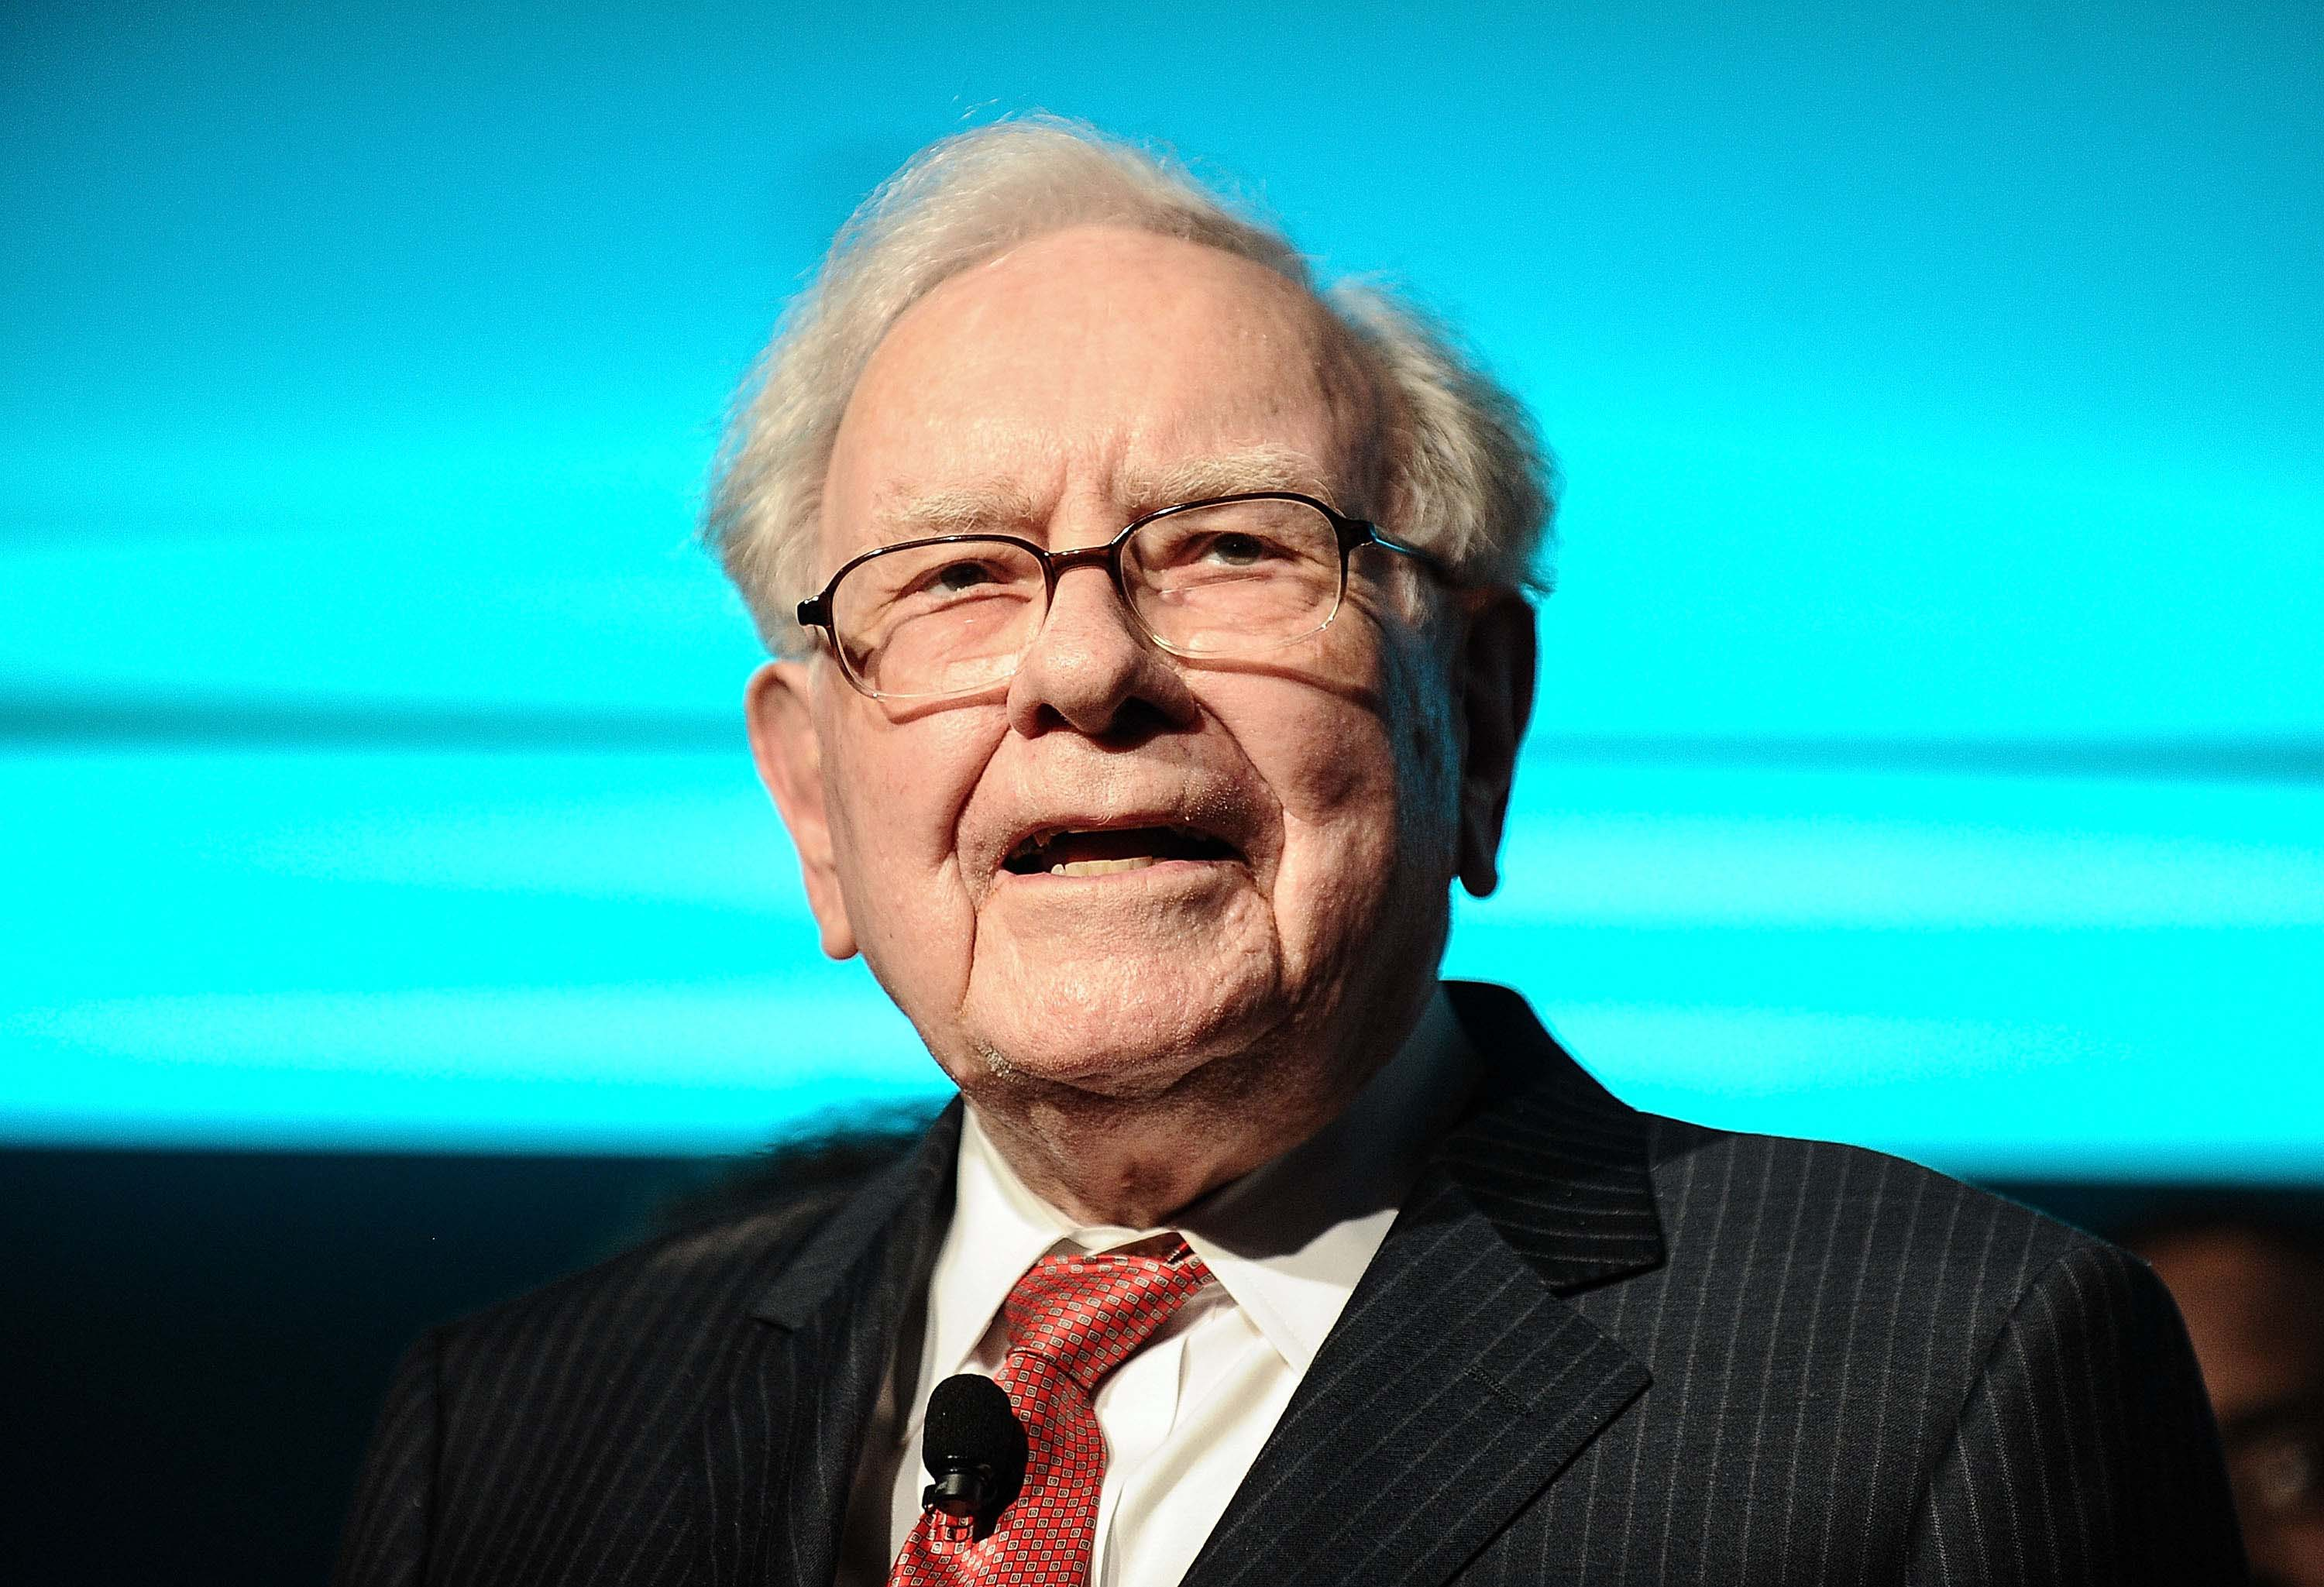 Can Warren Buffett, the Oracle of Omaha, still see the future?